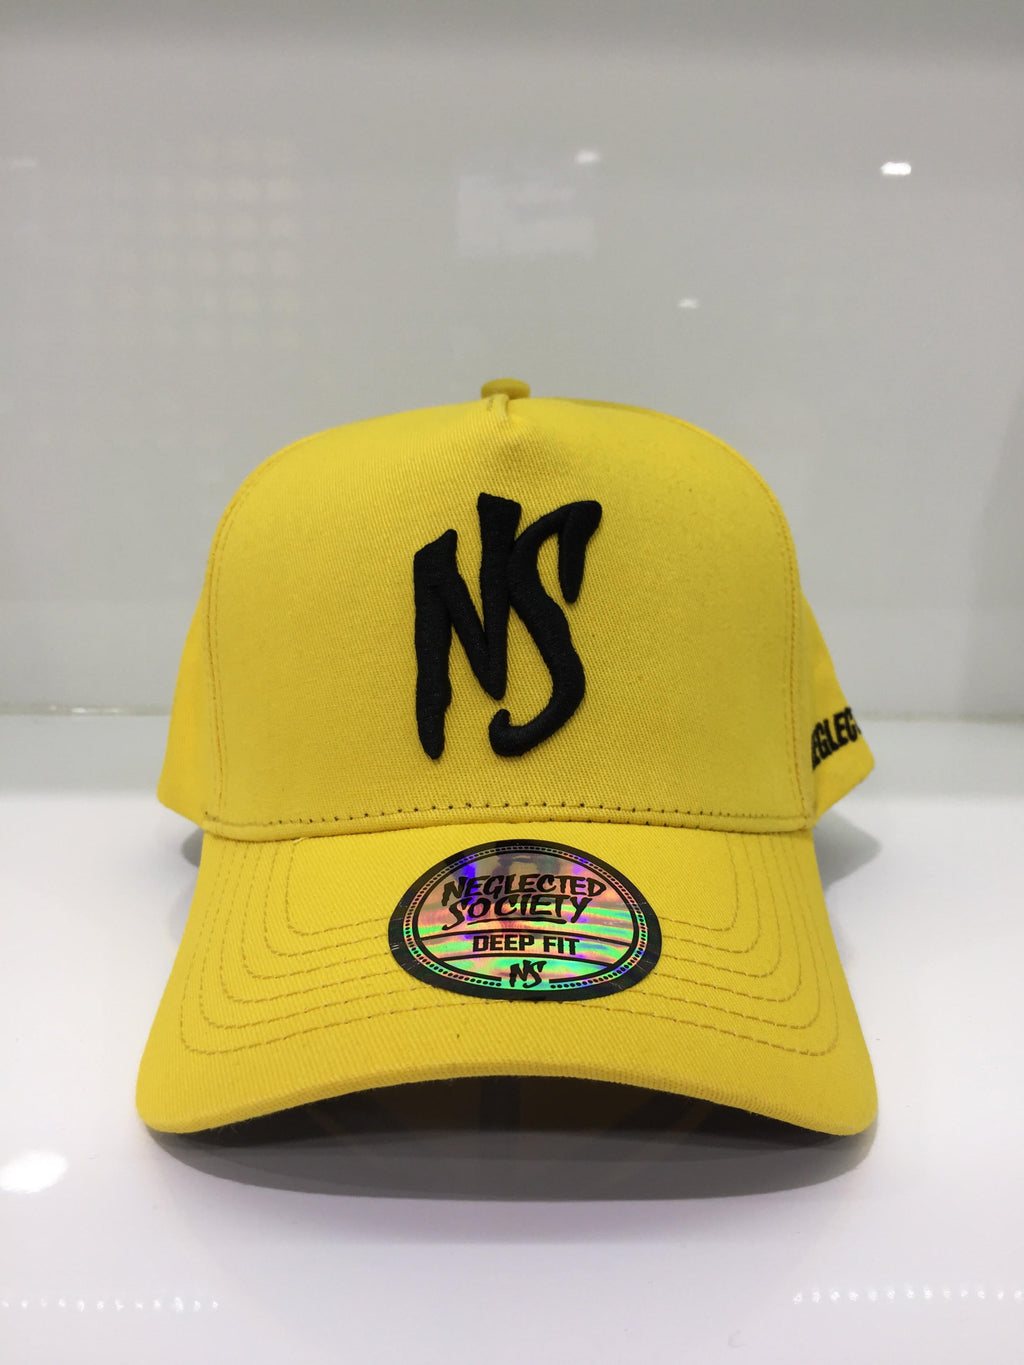 NS Aframe Flexband Yellow/Black DF Snapback (DeepFIT) Cap